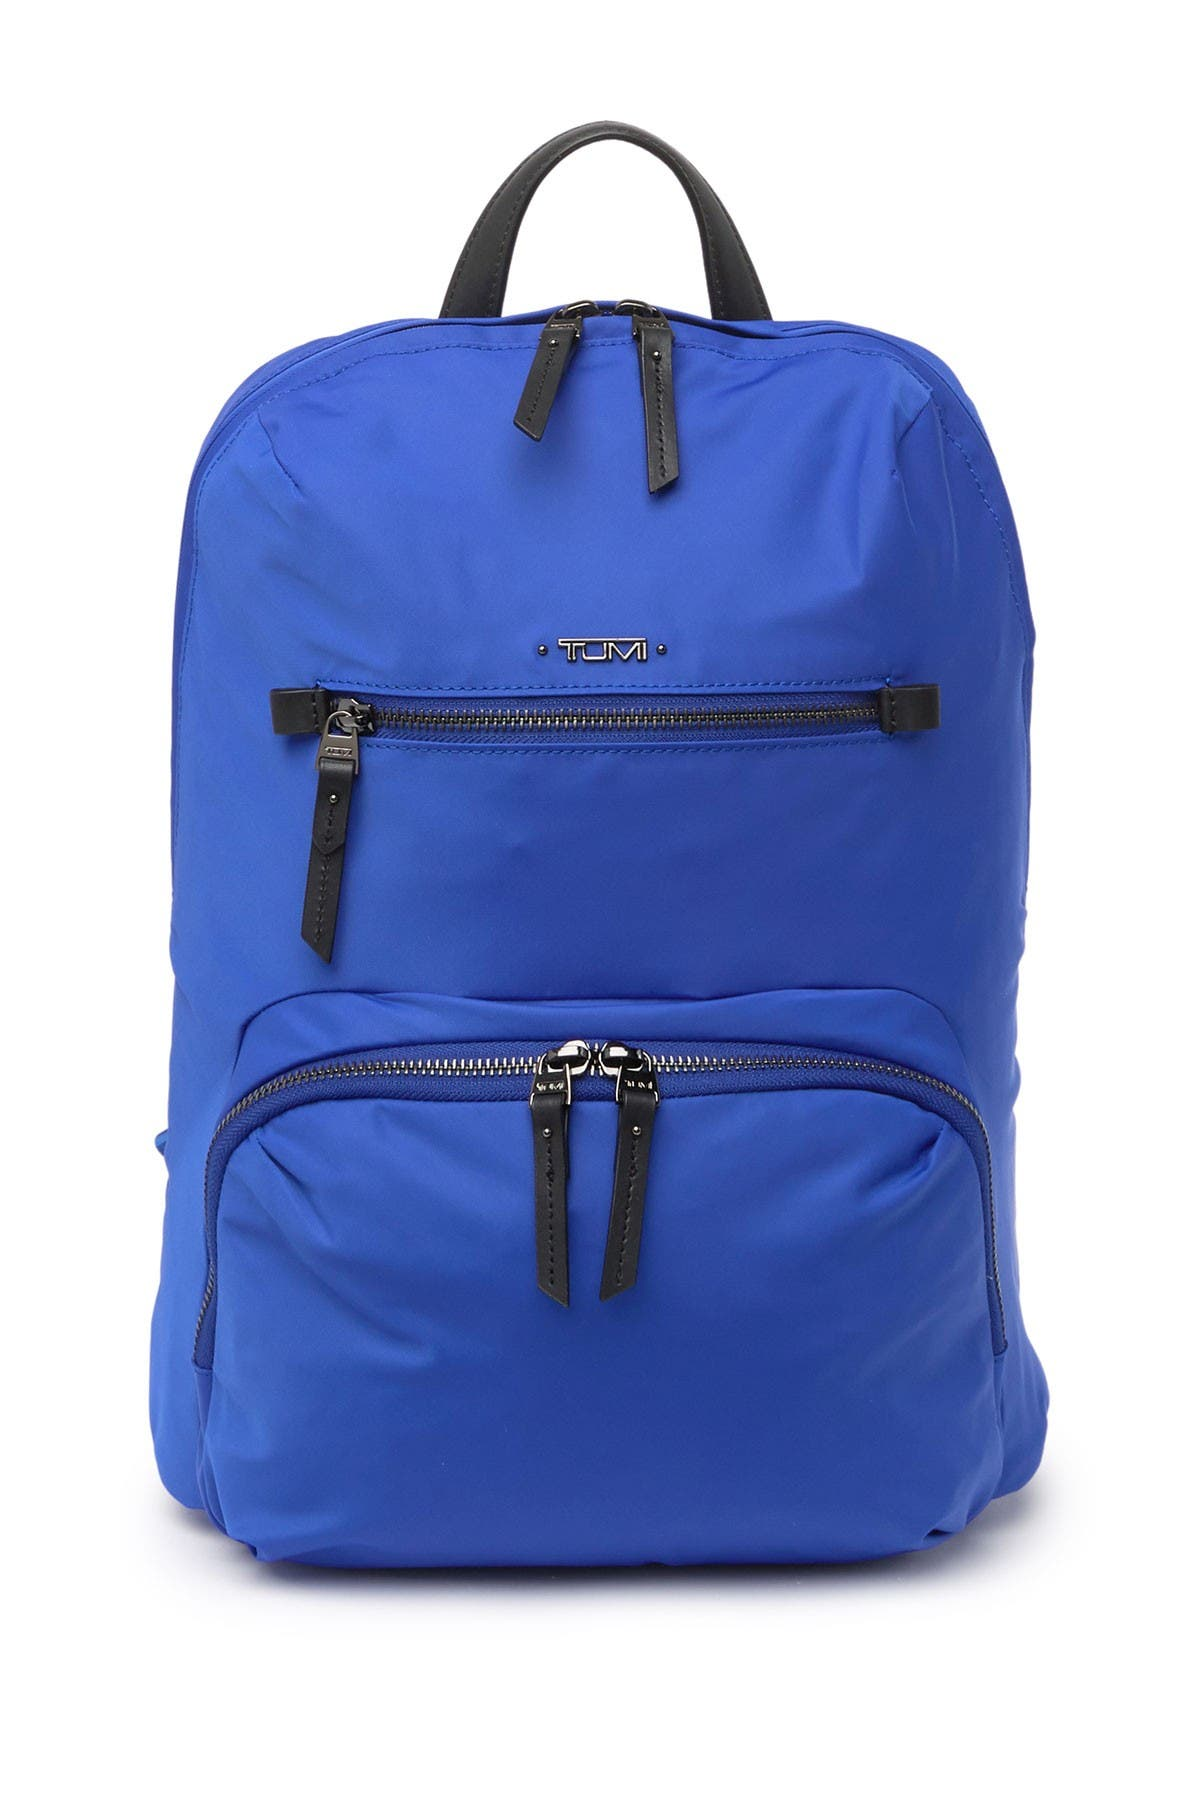 Image of Tumi Cora Backpack